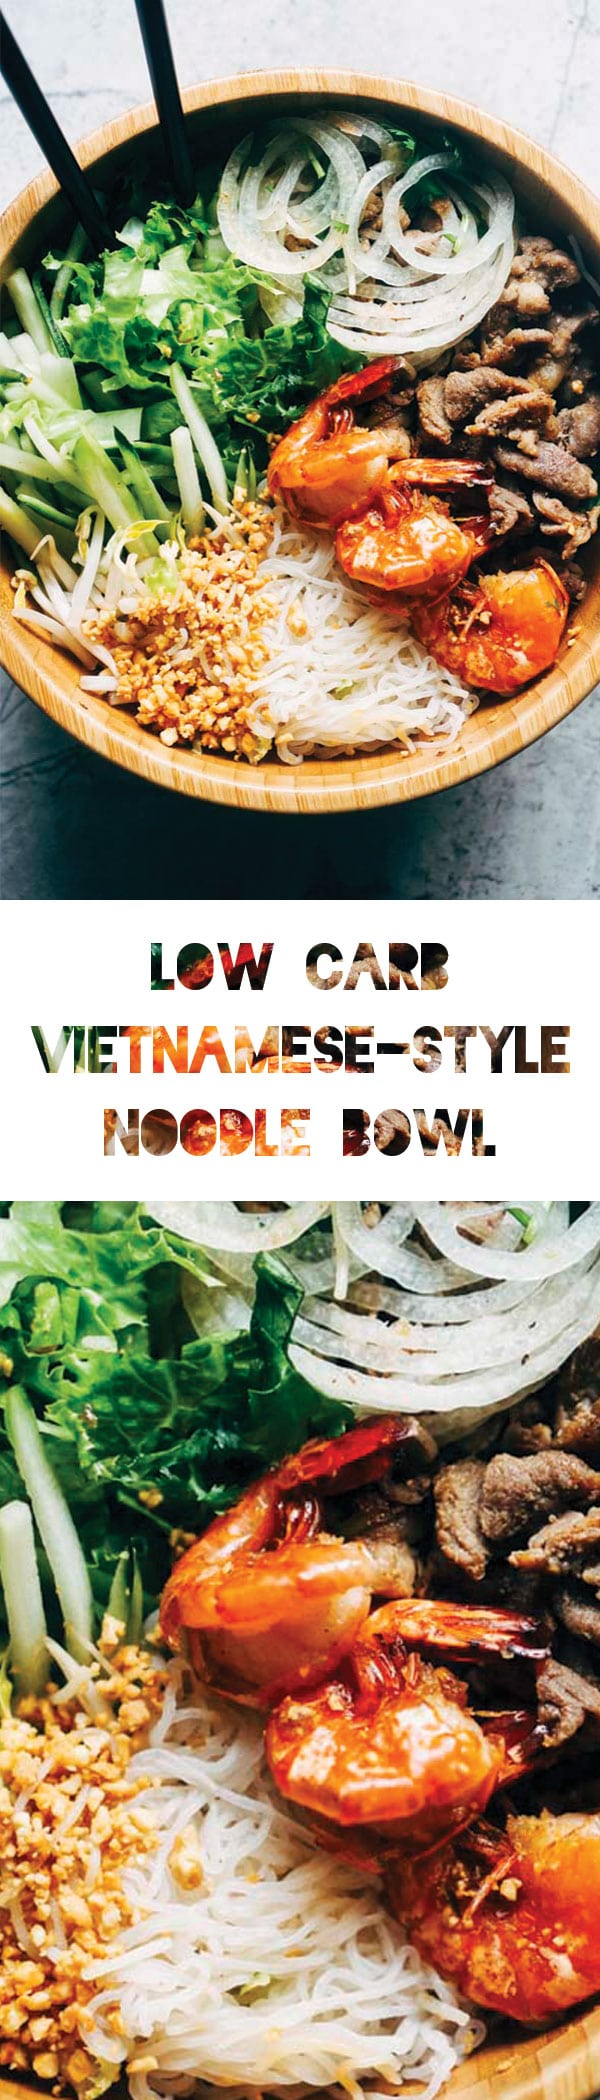 Vietnamese Salad with Shirataki Noodles | Low Carb & Keto Vietnamese-Style Food